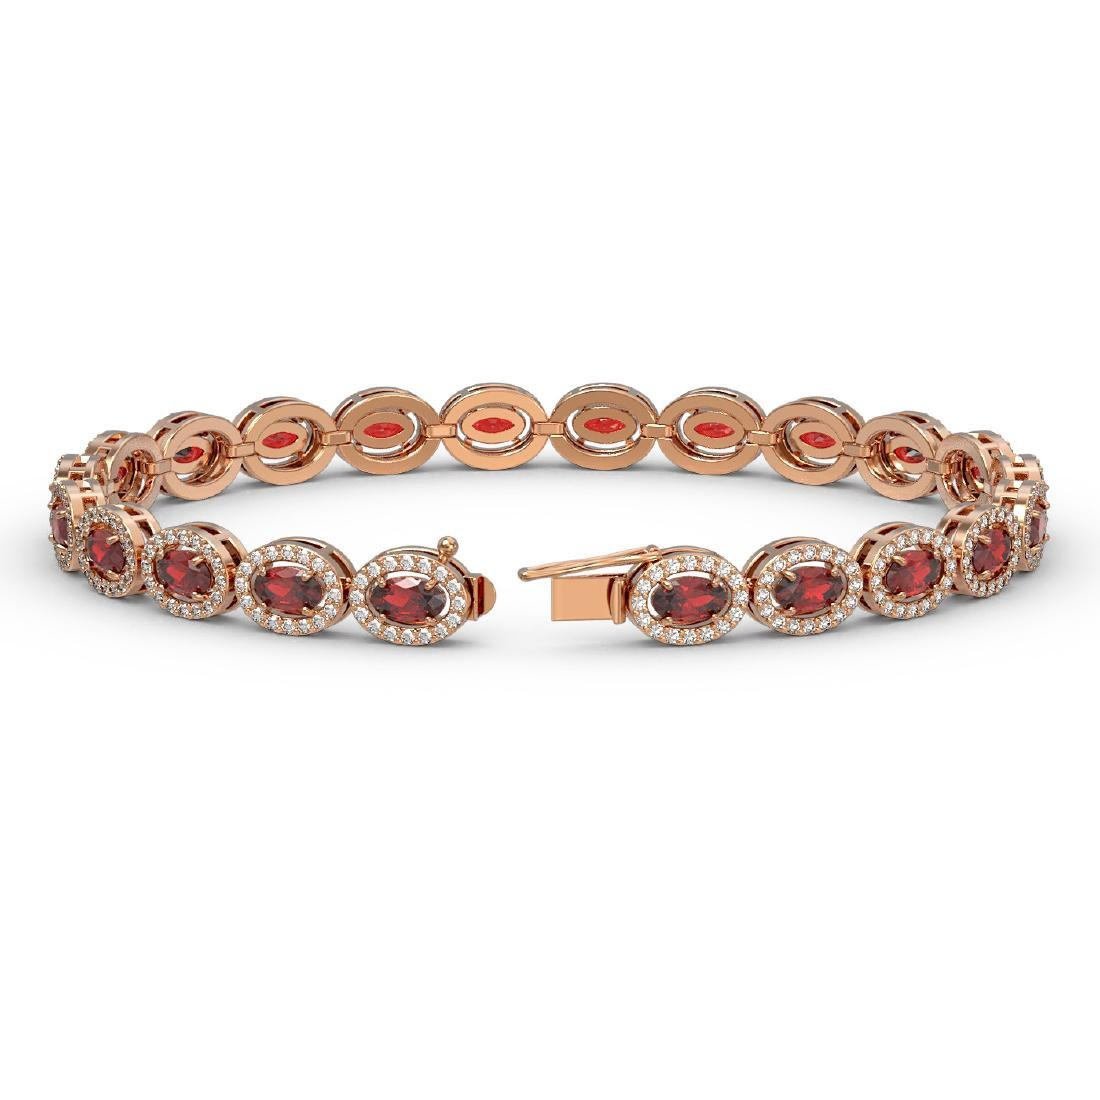 10.11 CTW Garnet & Diamond Halo Bracelet 10K Rose Gold - 2